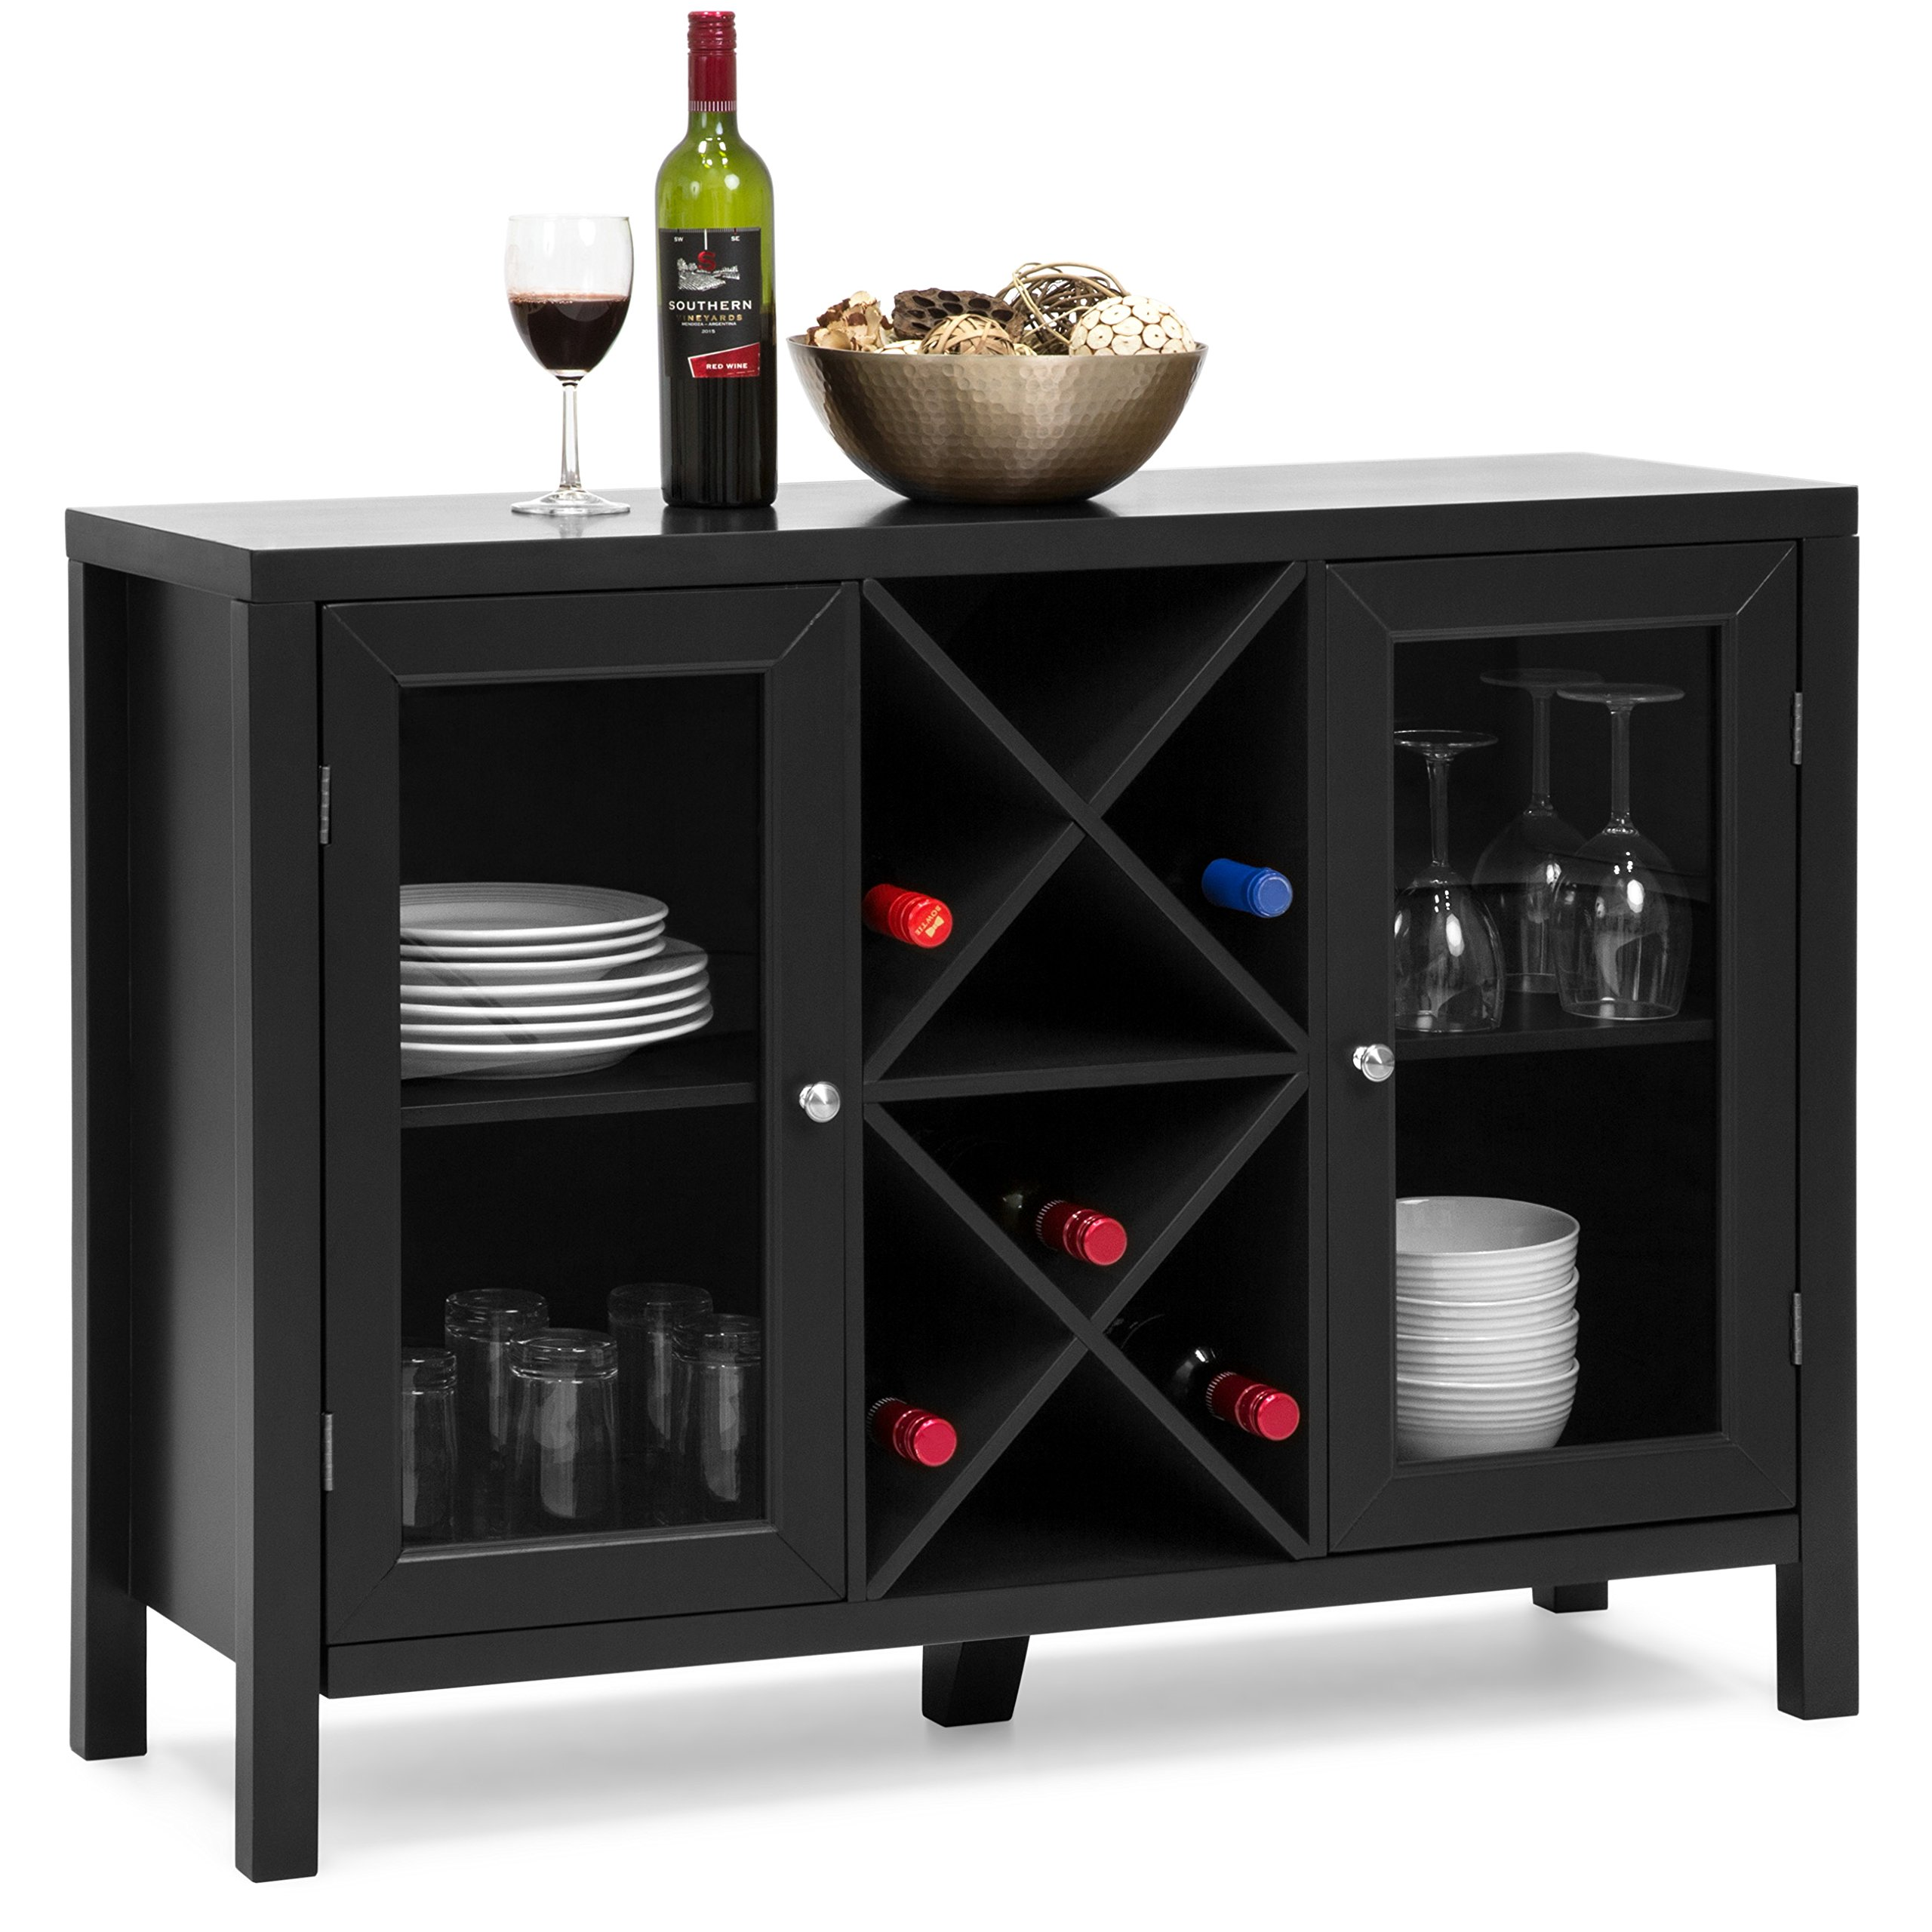 Best Choice Products Wooden Wine Rack Console Sideboard Table w/Storage - Black by Best Choice Products